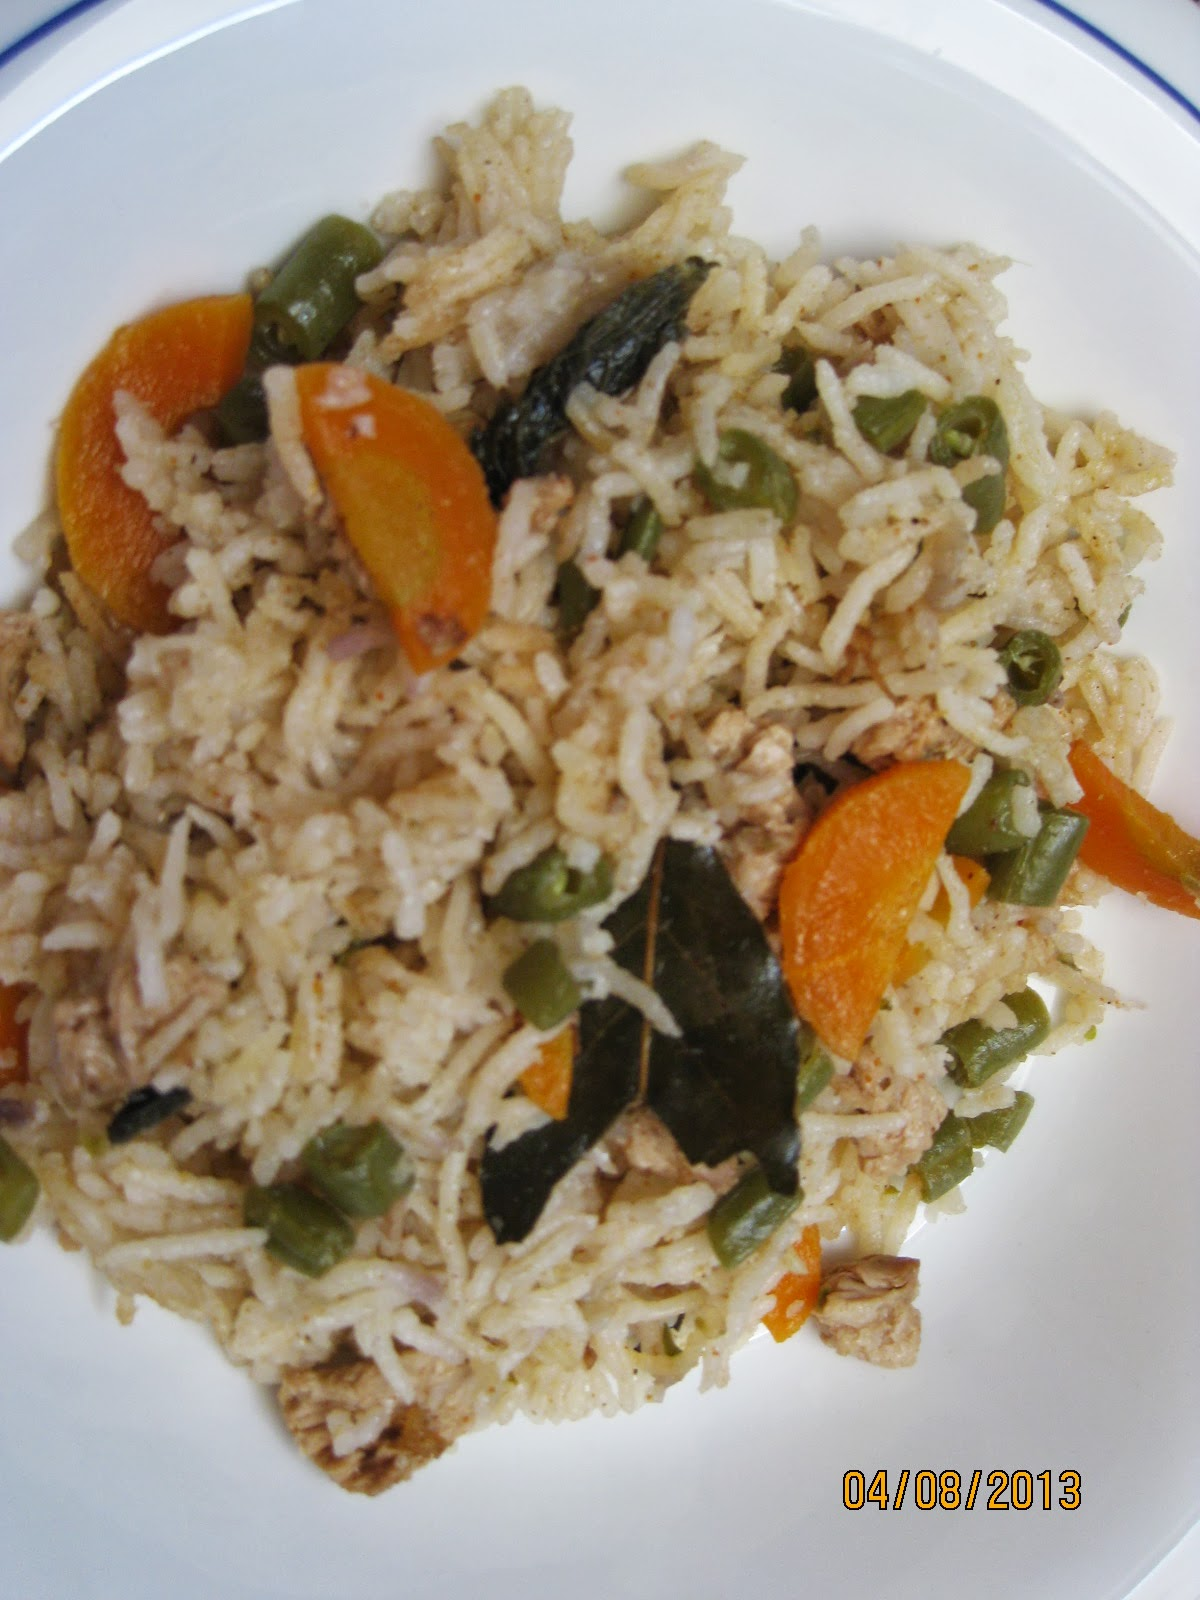 Veg Pulao/Spicy Indian Vegetable Rice